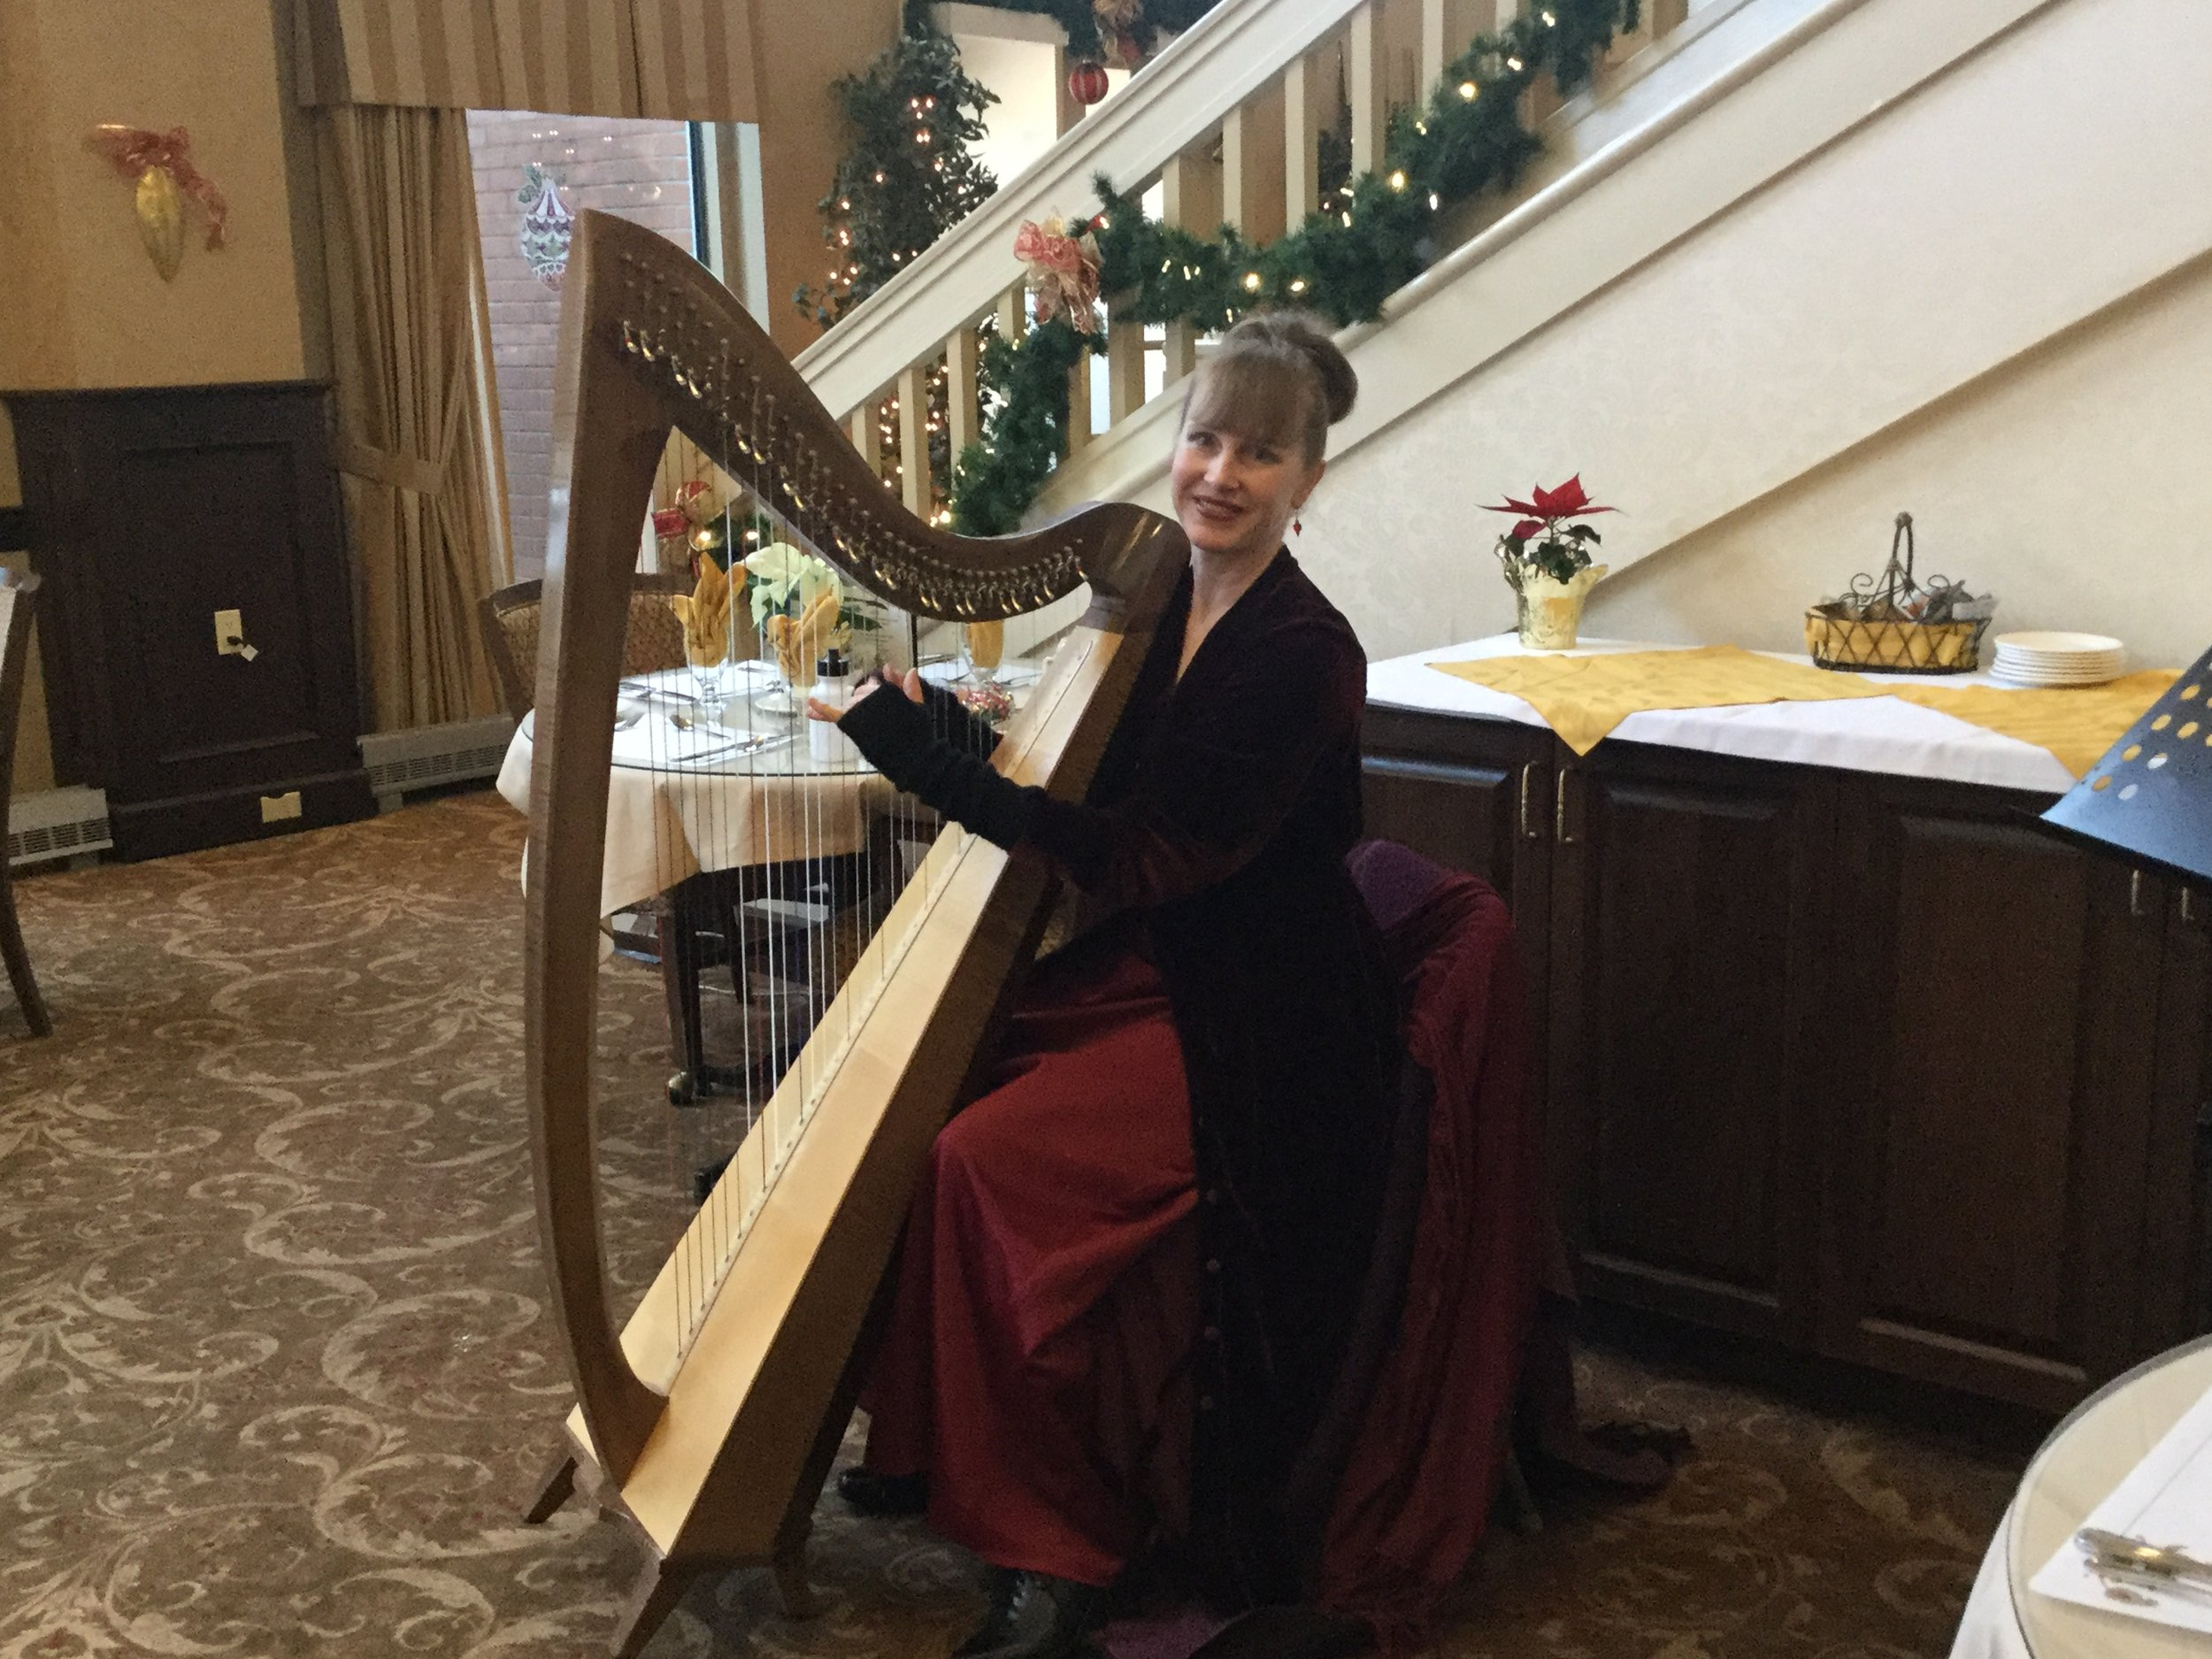 Christmas at Parkwood Manor, Coquitlam, B.C. (Dec. 2016)